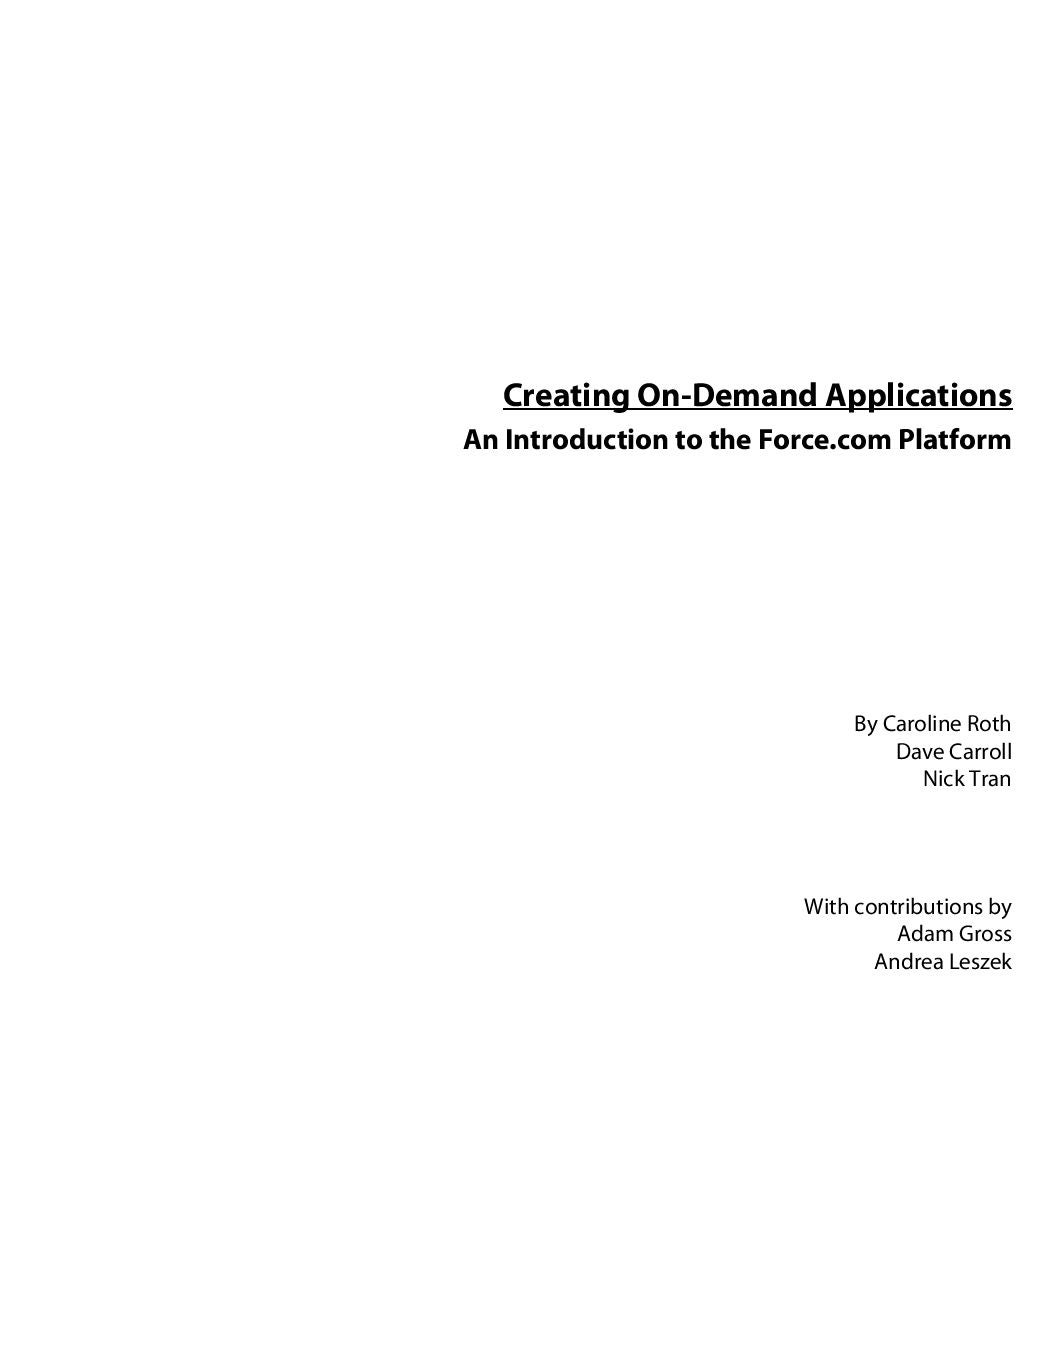 Creating On-demand Applications by mactucket - issuu